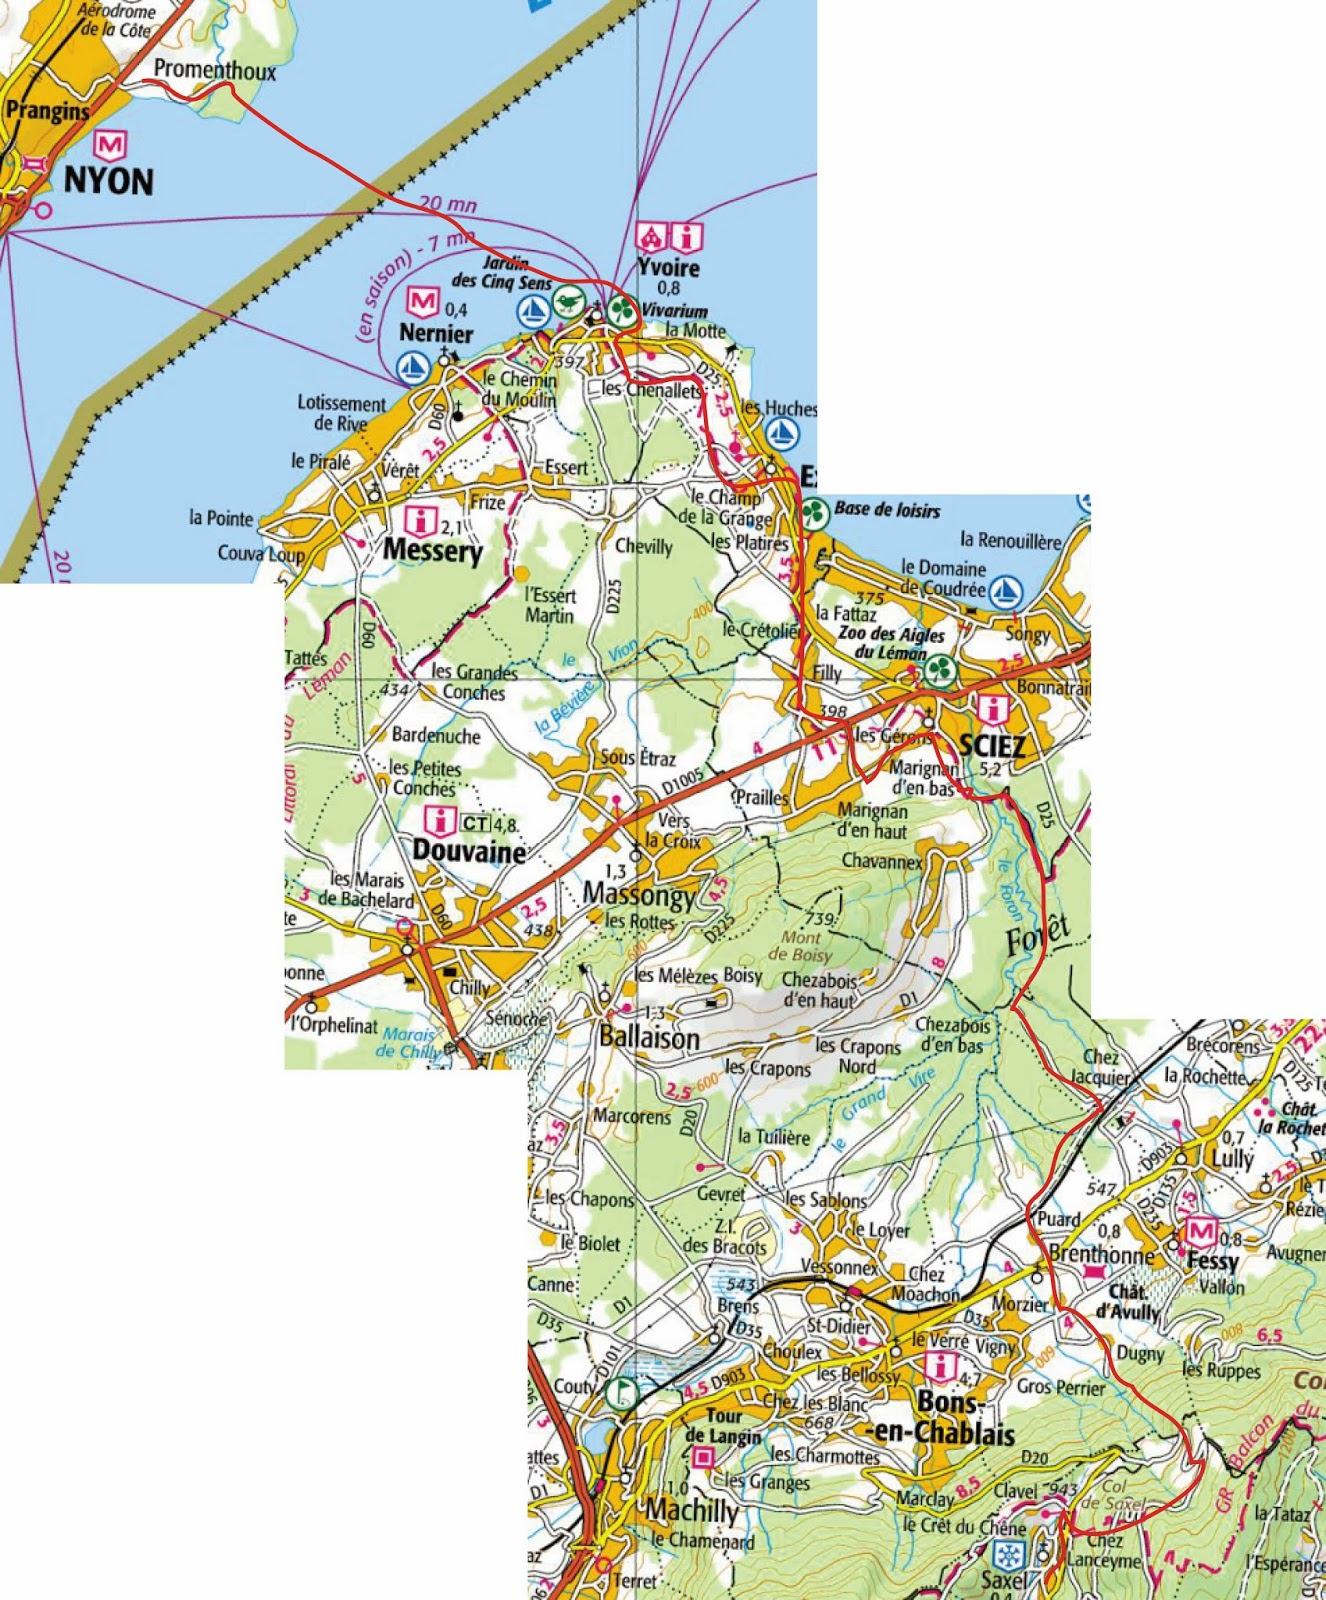 across lake leman lake geneva 3 5 miles from prangins to yvoire then a path of 12 9 miles from yvoire to saxel route is show in red click on map to